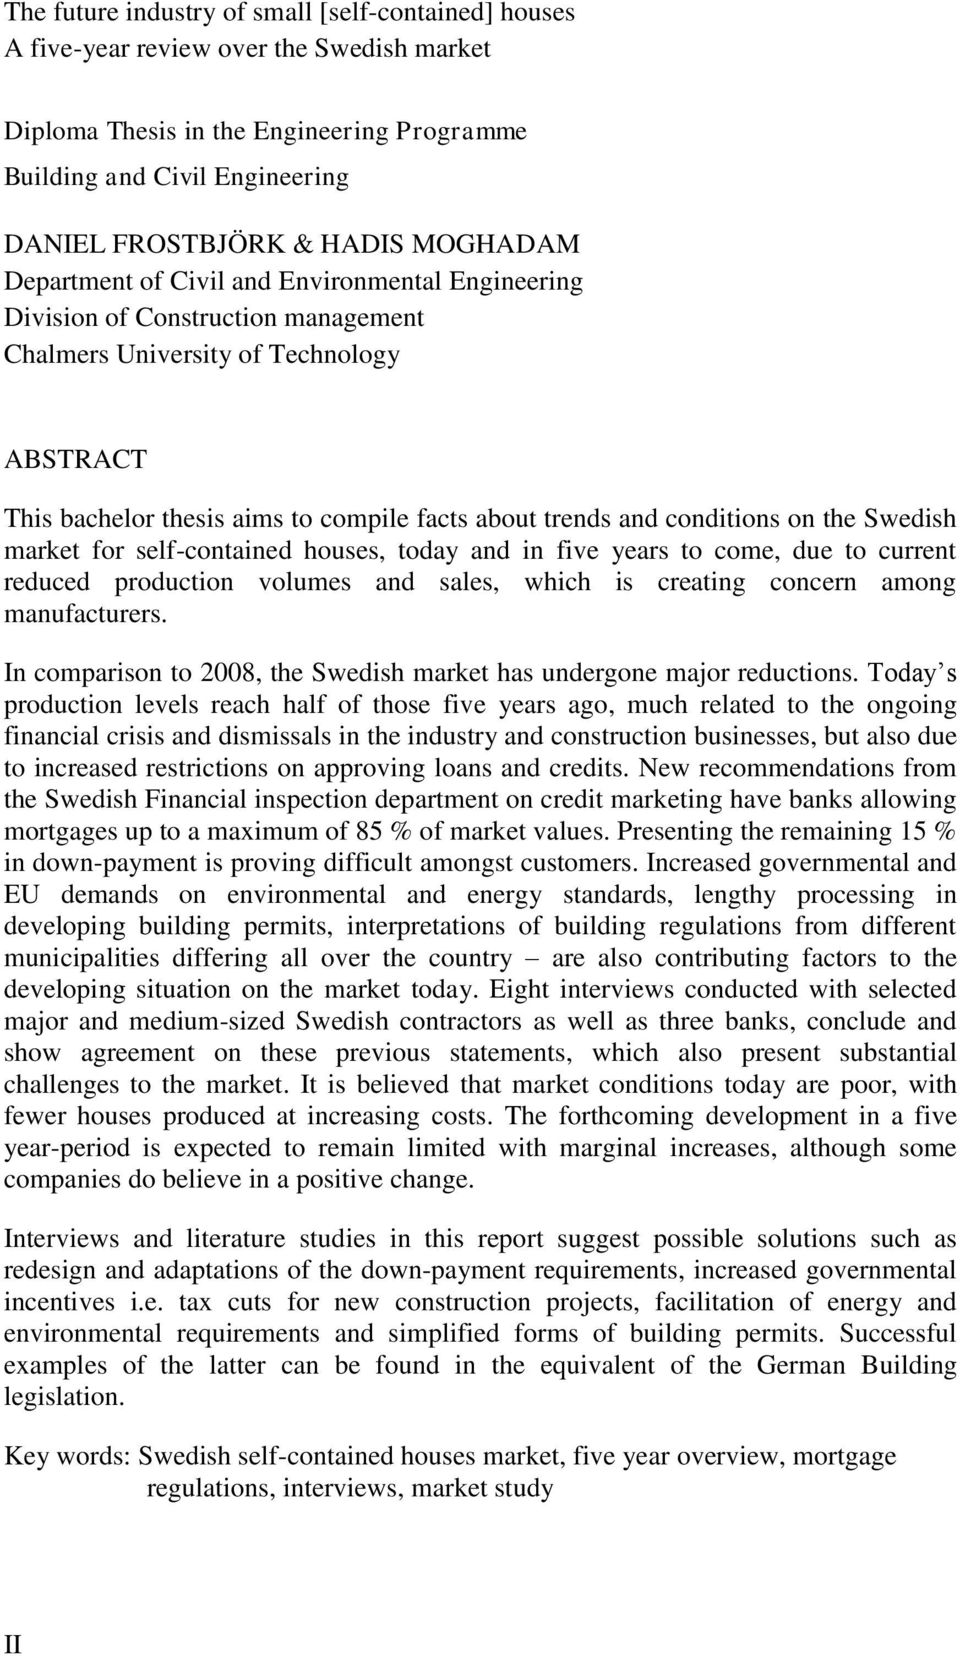 conditions on the Swedish market for self-contained houses, today and in five years to come, due to current reduced production volumes and sales, which is creating concern among manufacturers.